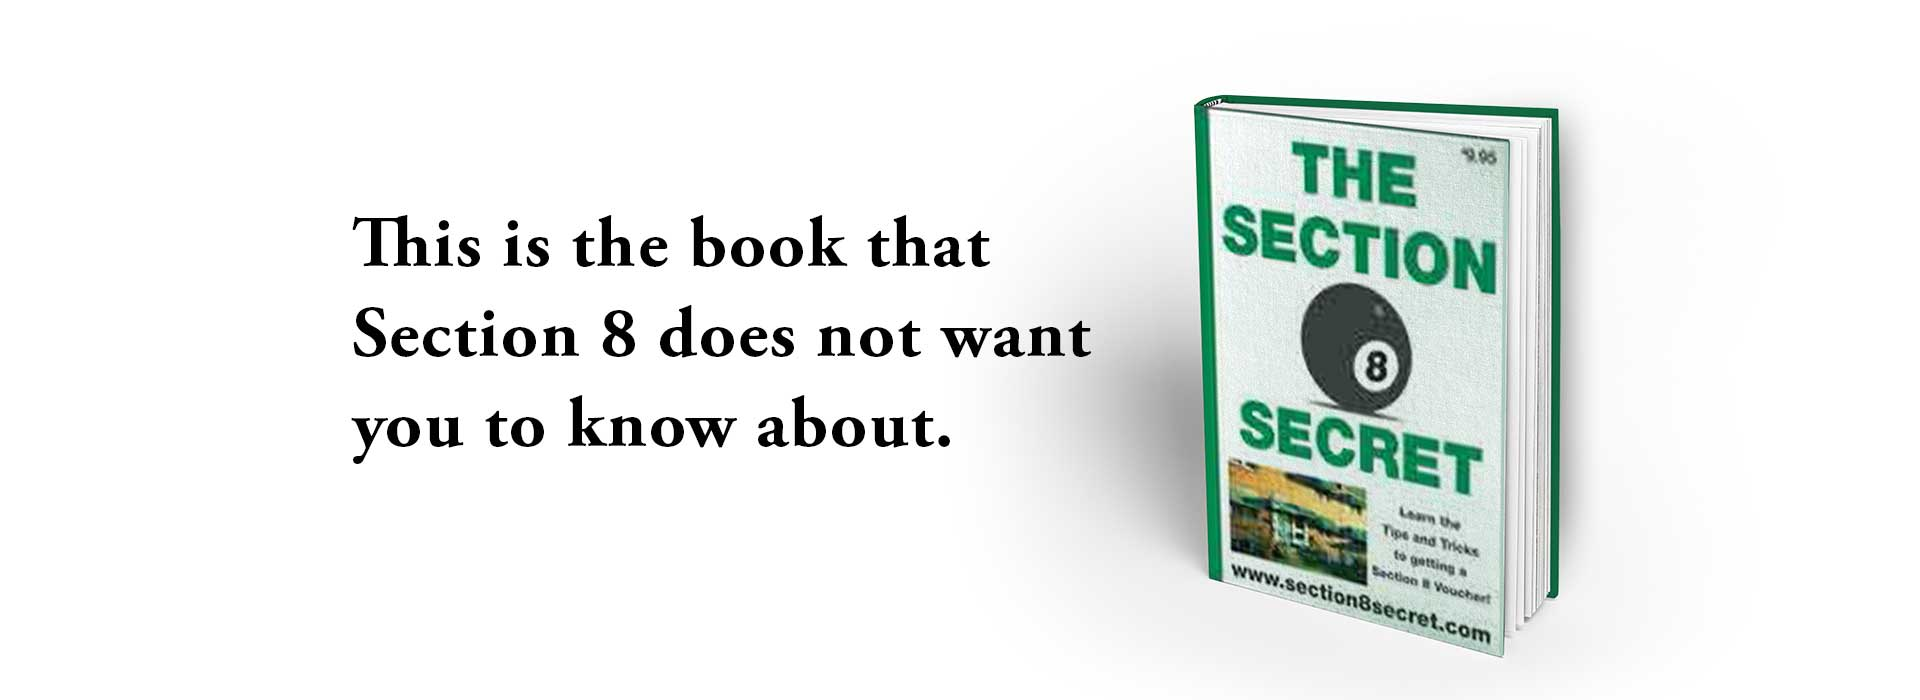 Section 8 Bible - Top Selling Guide for Landlords